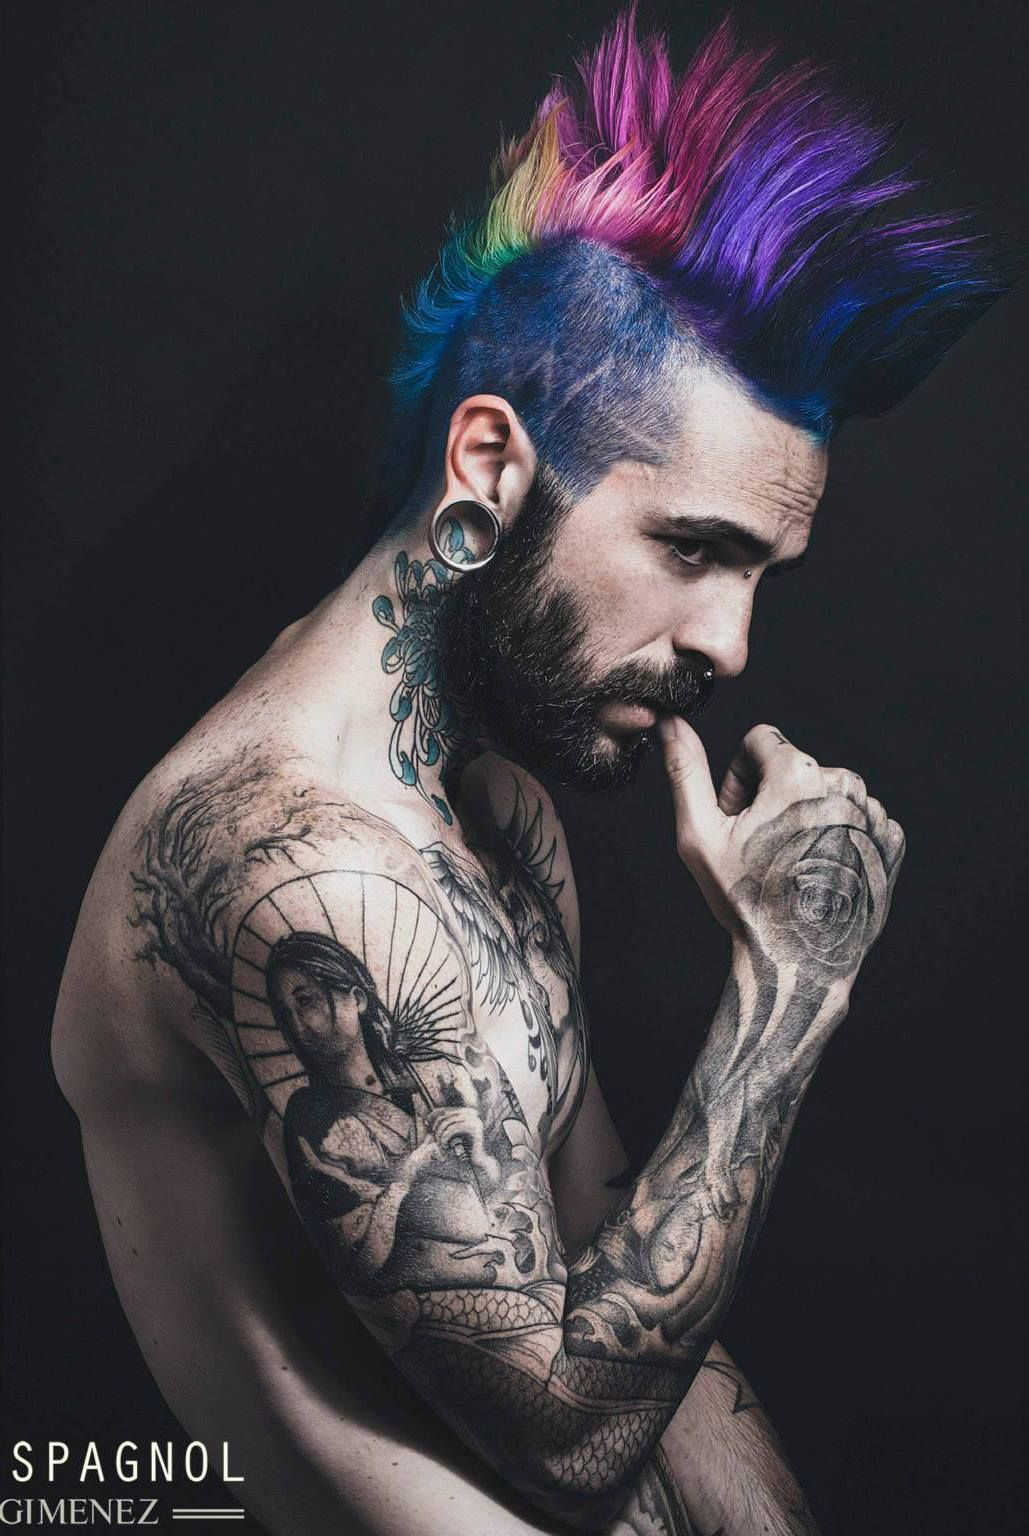 Communication on this topic: 50 Mohawk Hairstyles For Men – Manly , 50-mohawk-hairstyles-for-men-manly/